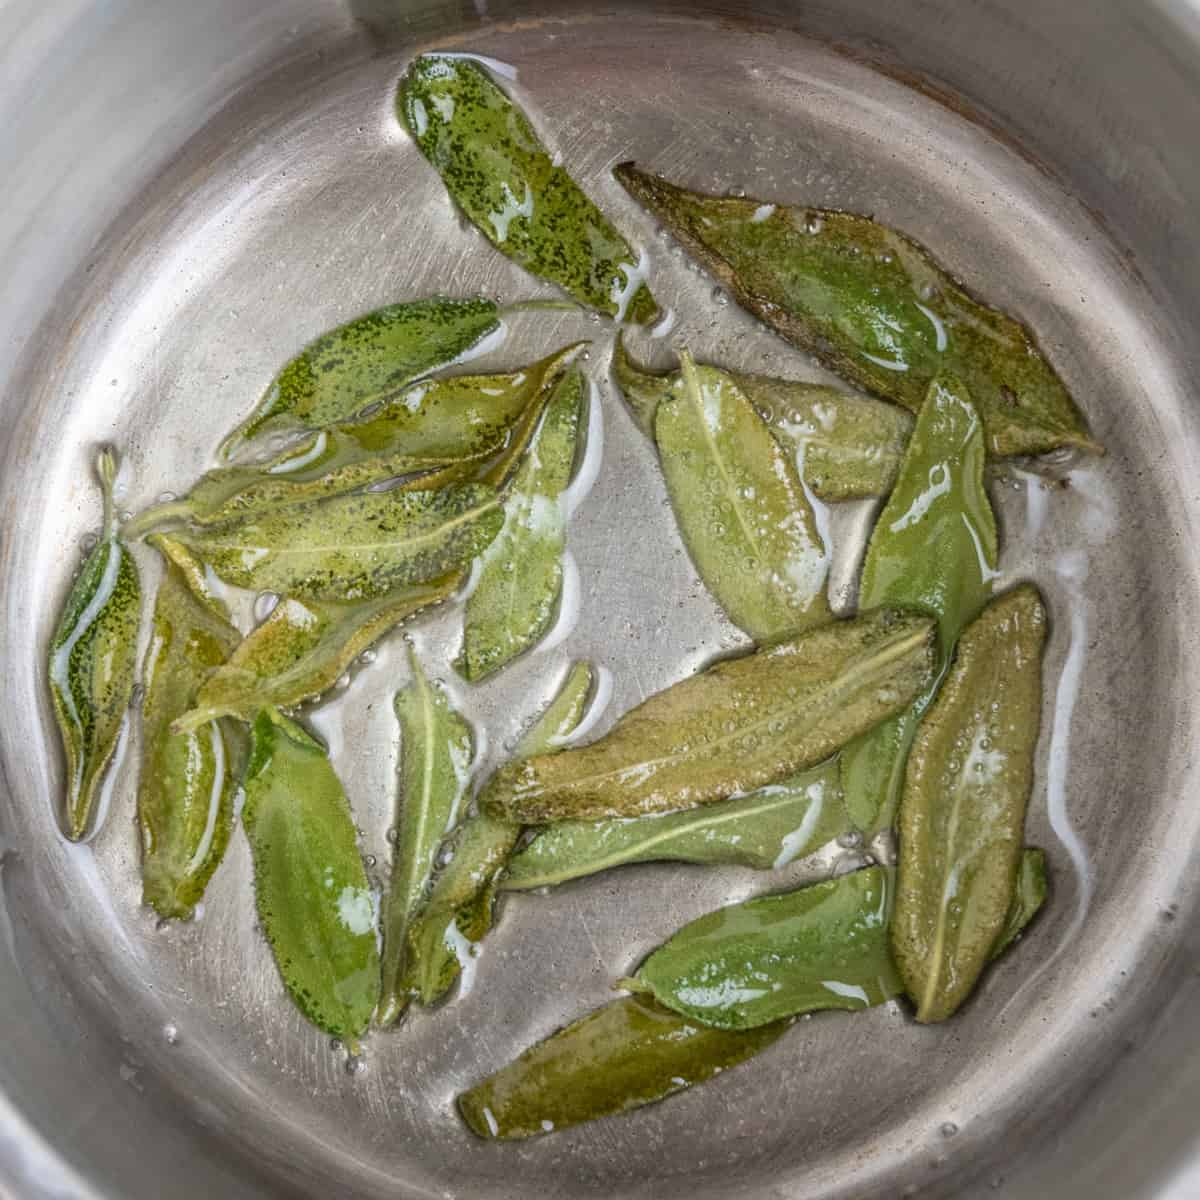 A steel pan continging sage leaves frying in oil.